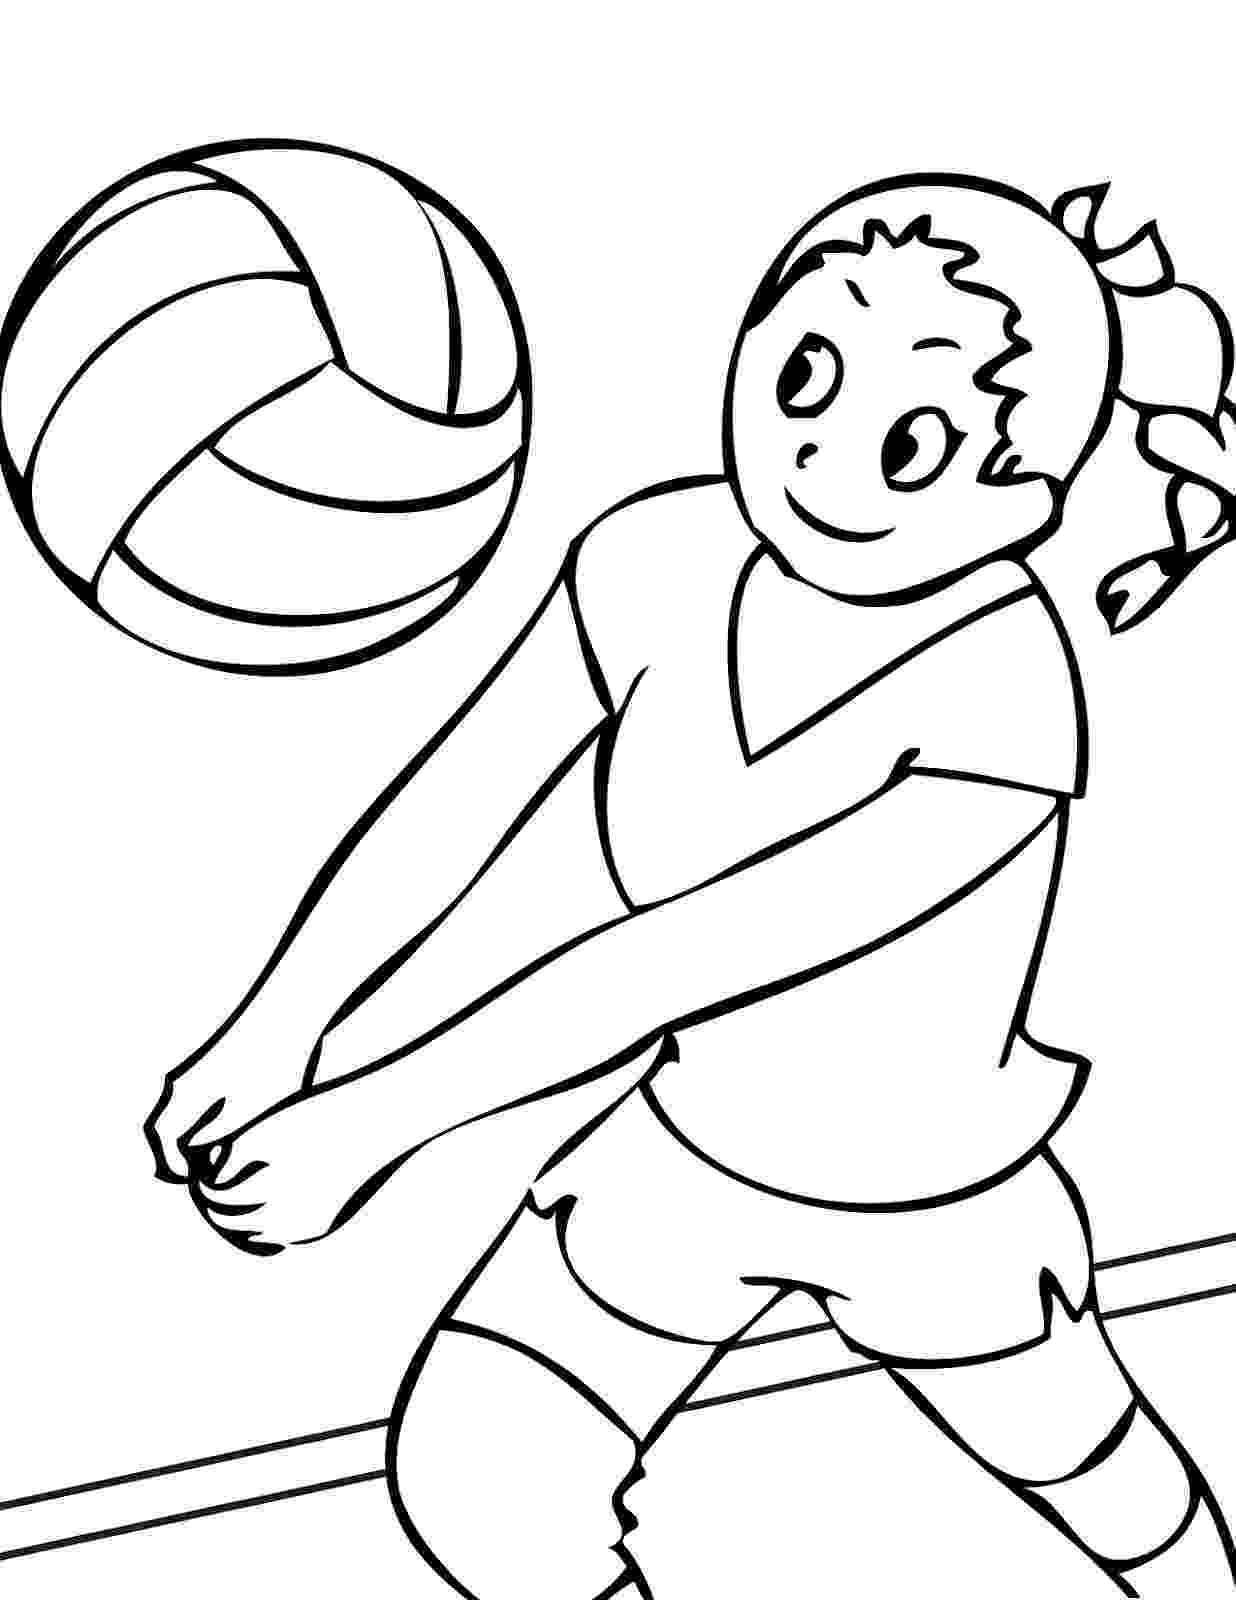 coloring pages volleyball printable volleyball coloring pages for kids cool2bkids pages coloring volleyball 1 1